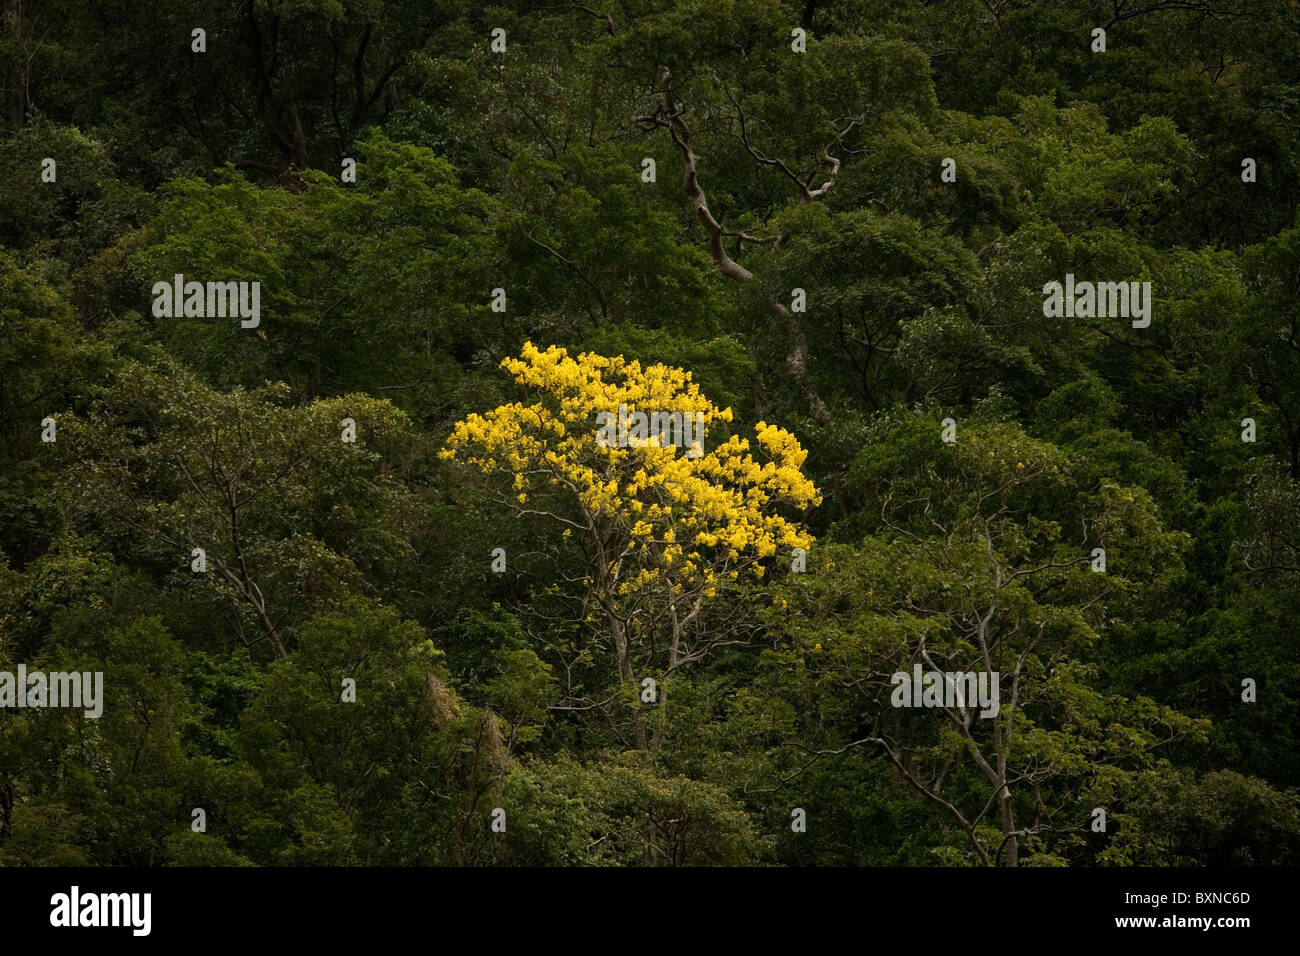 A yellow tree in the Sumidero Canyon in Tuxla Gutierrez, Chiapas, Mexico, February 18, 2010. - Stock Image